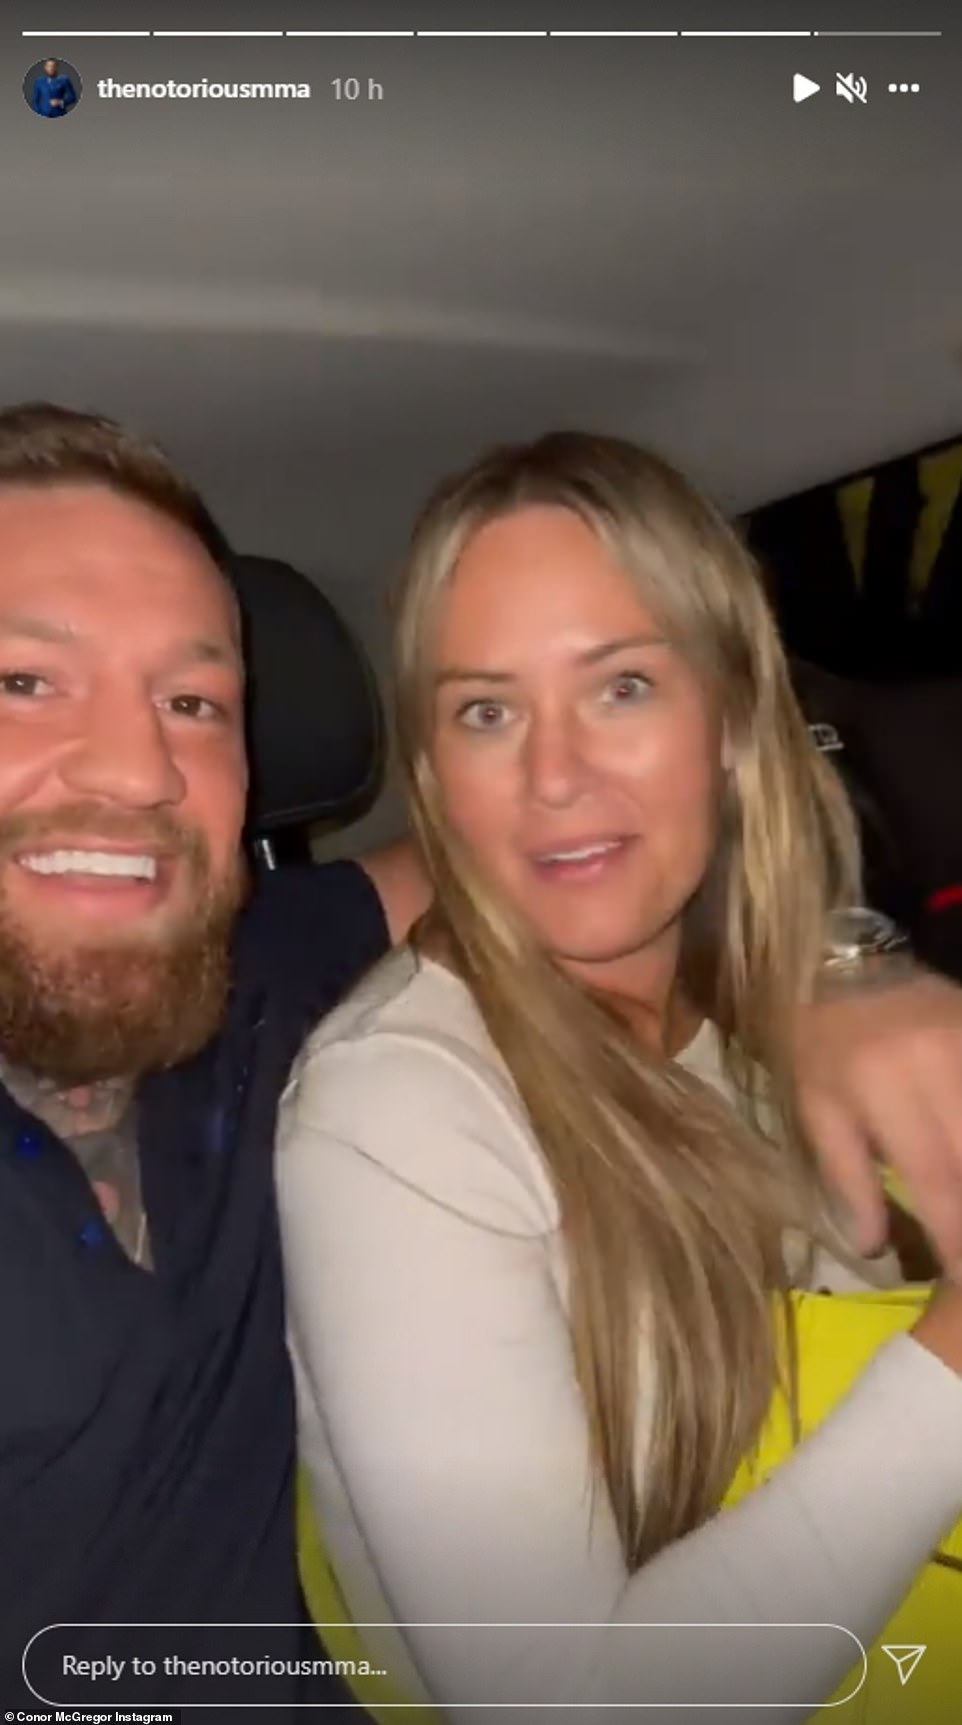 , Conor McGregor is flanked by FOUR security guards in Rome with fiancée Dee Devlin, The Habari News New York